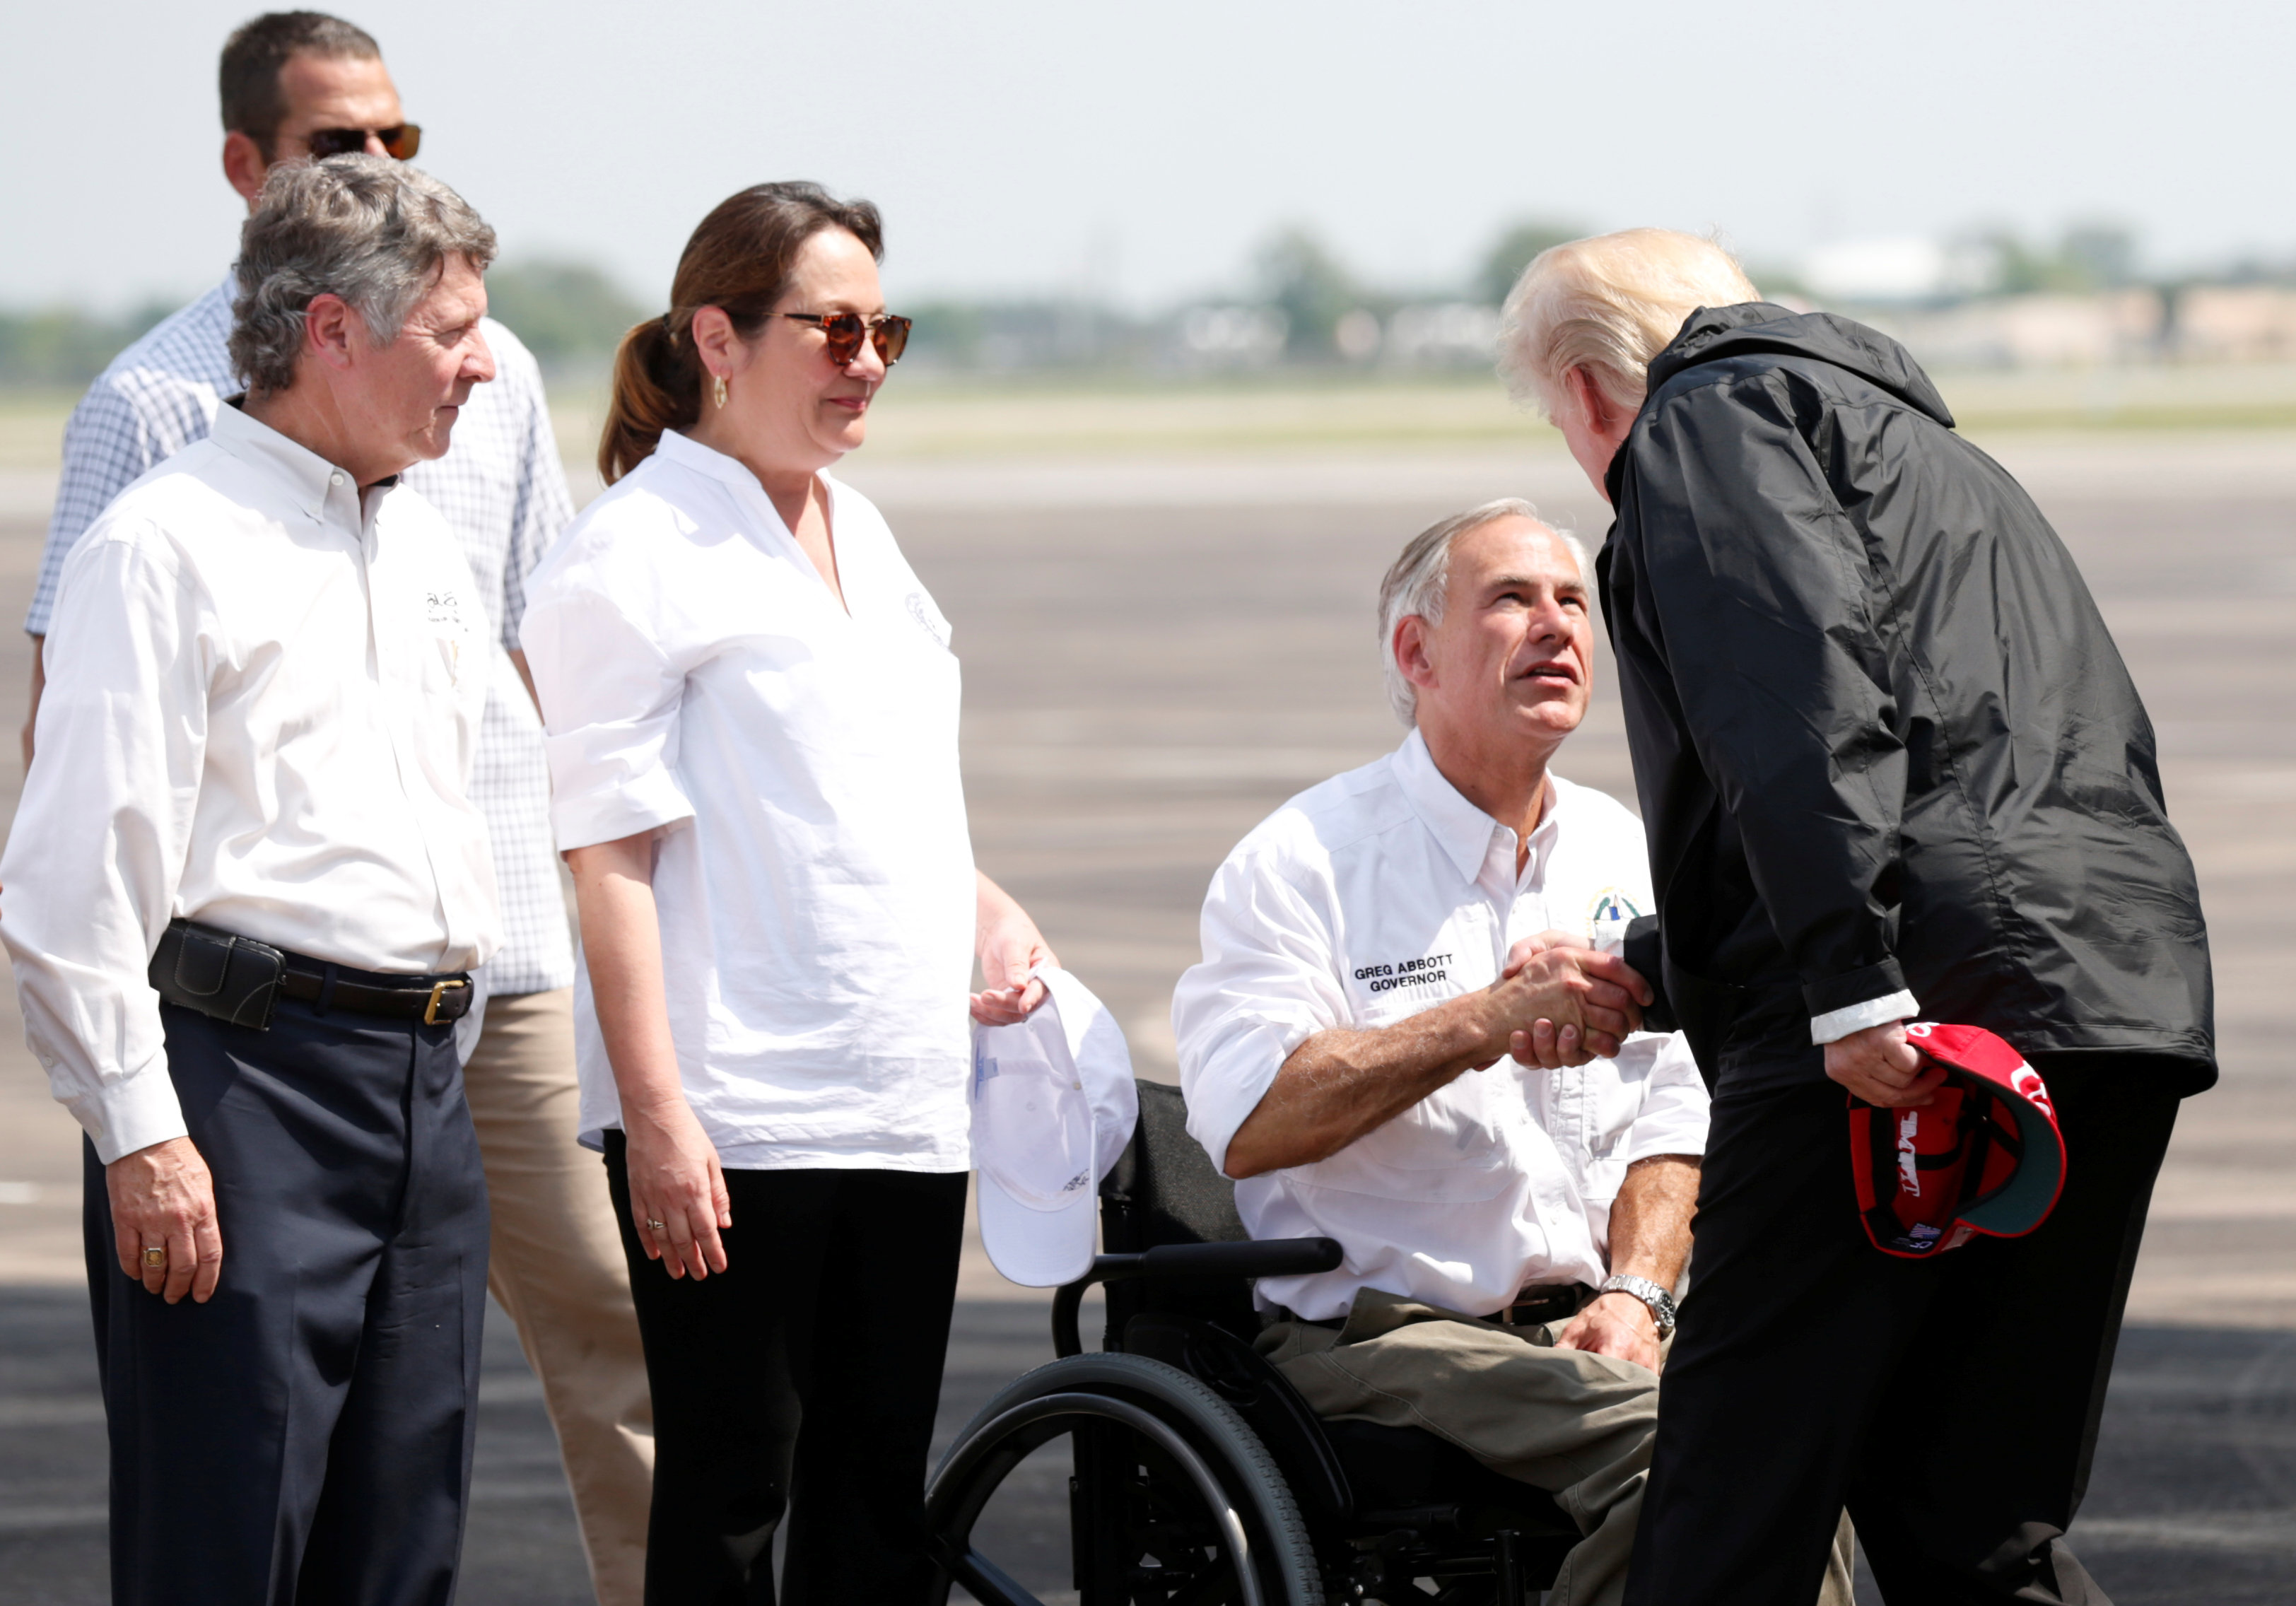 U.S. President Donald Trump greets Texas Governor Greg Abbott after arriving at Ellington Field to meet with flood survivors and volunteers who assisted in relief efforts in the aftermath of Hurricane Harvey, in Houston, Texas, U.S., September 2, 2017.   REUTERS/Kevin Lamarque